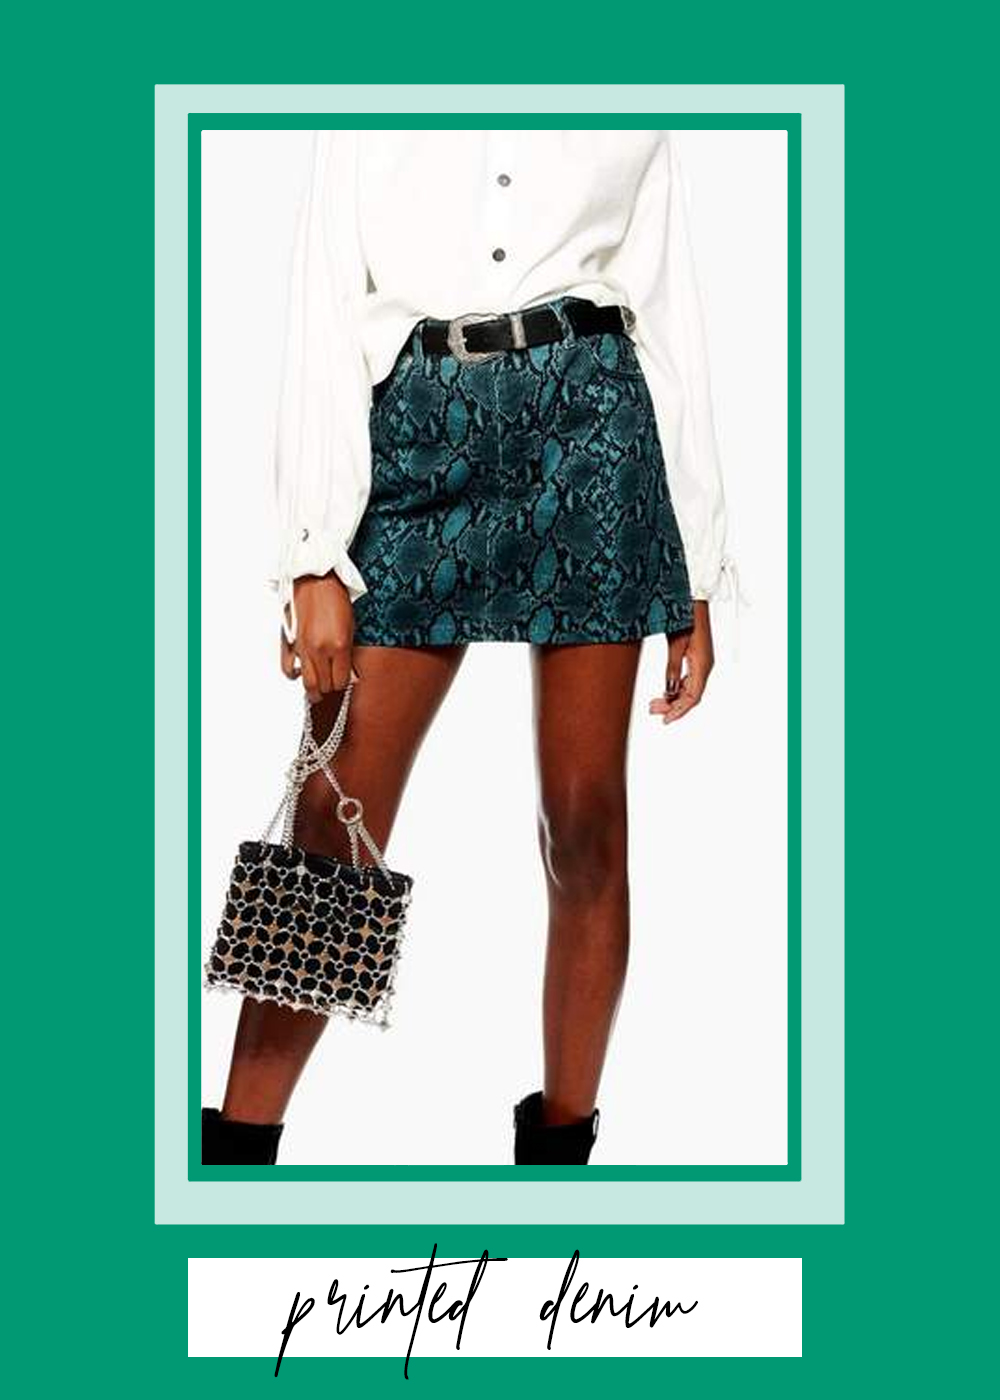 001. - Printed Denim Skirt // $60